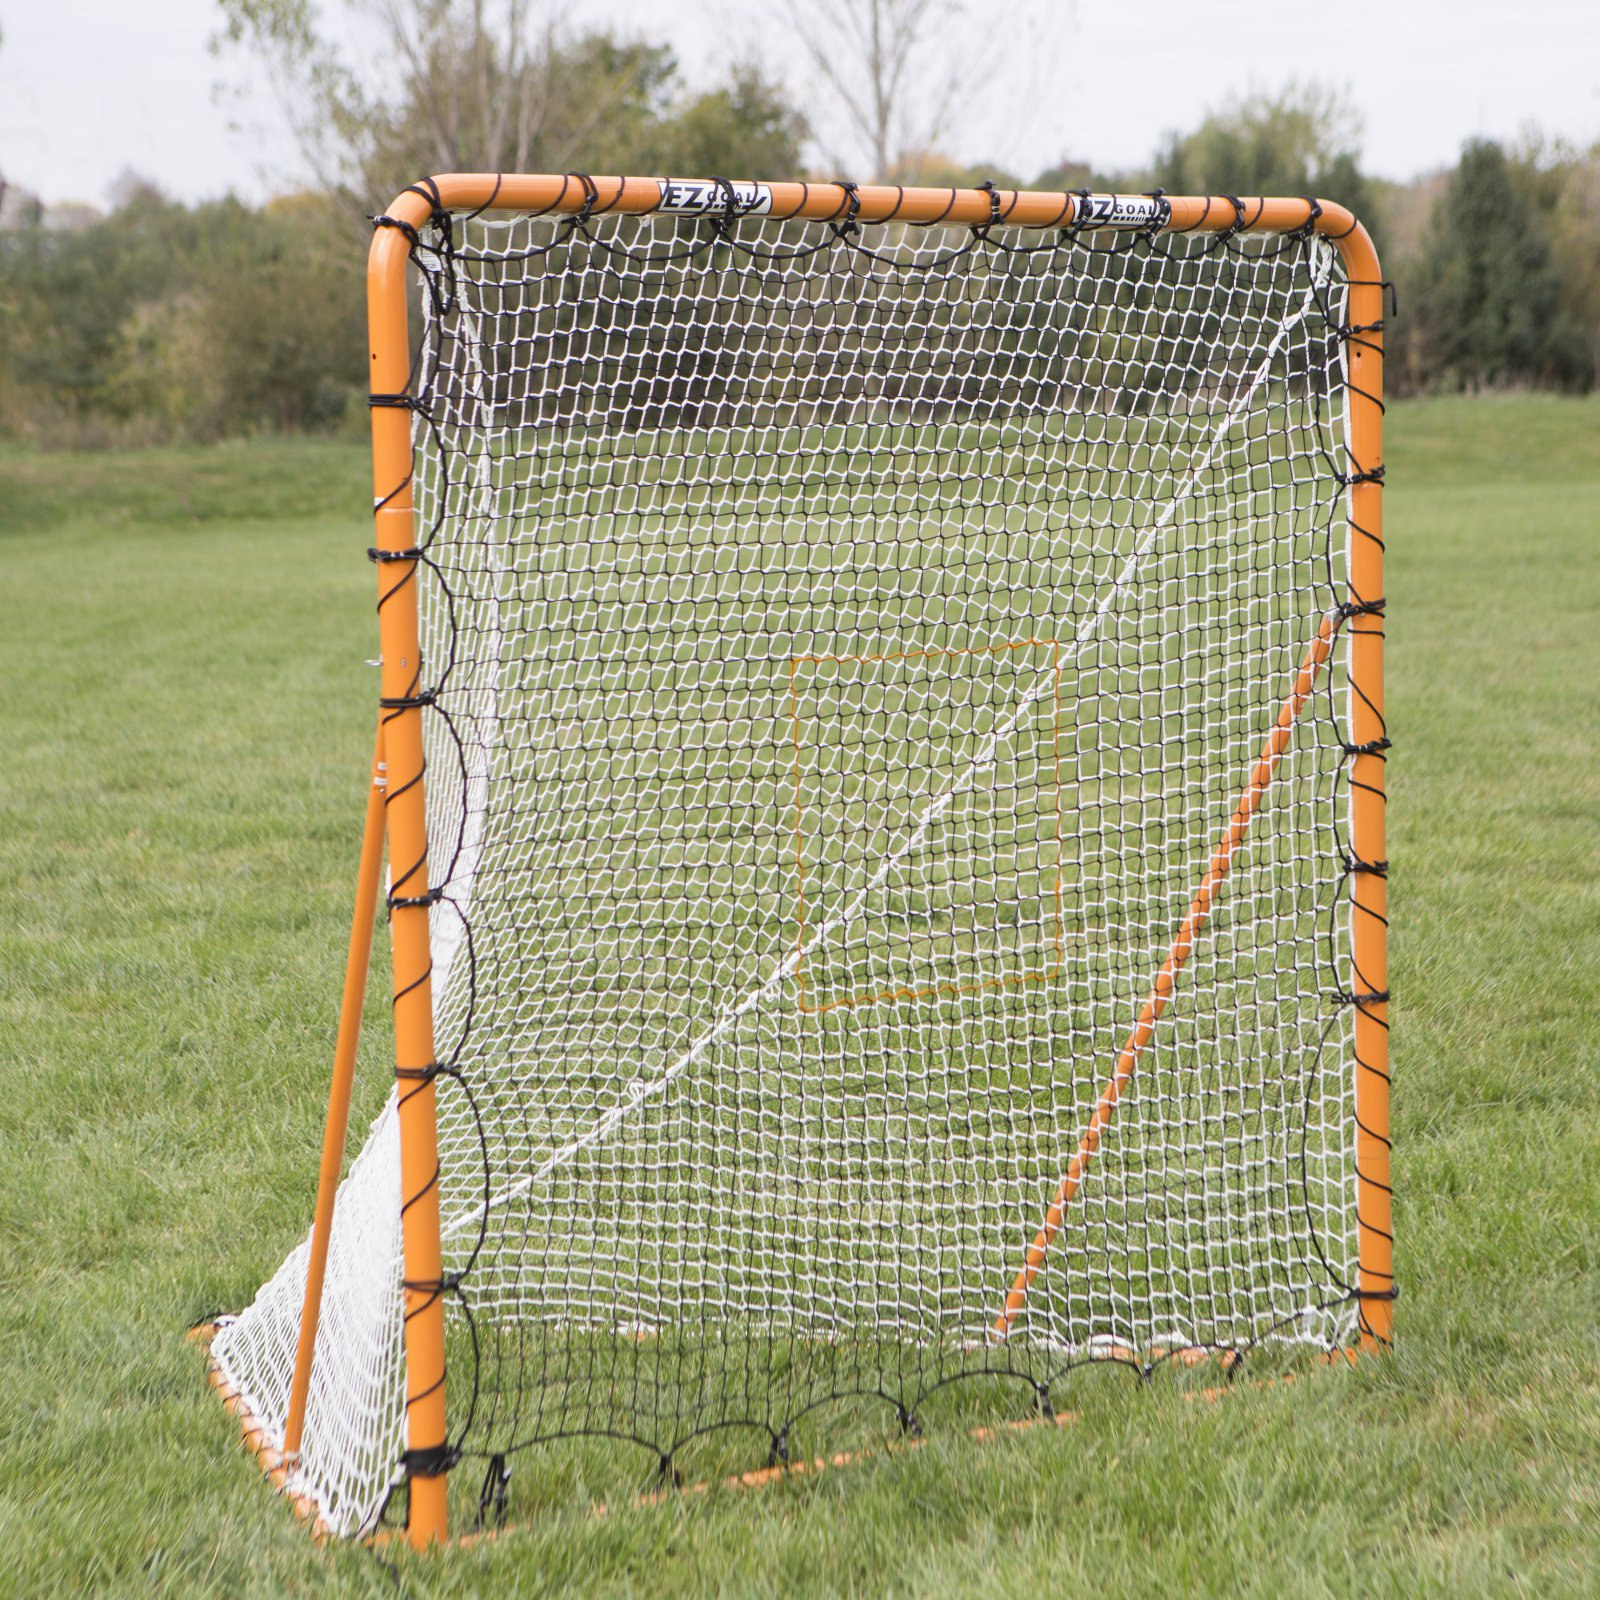 EZ Goal 6 x 6 ft. Folding Lacrosse Goal with Throwback